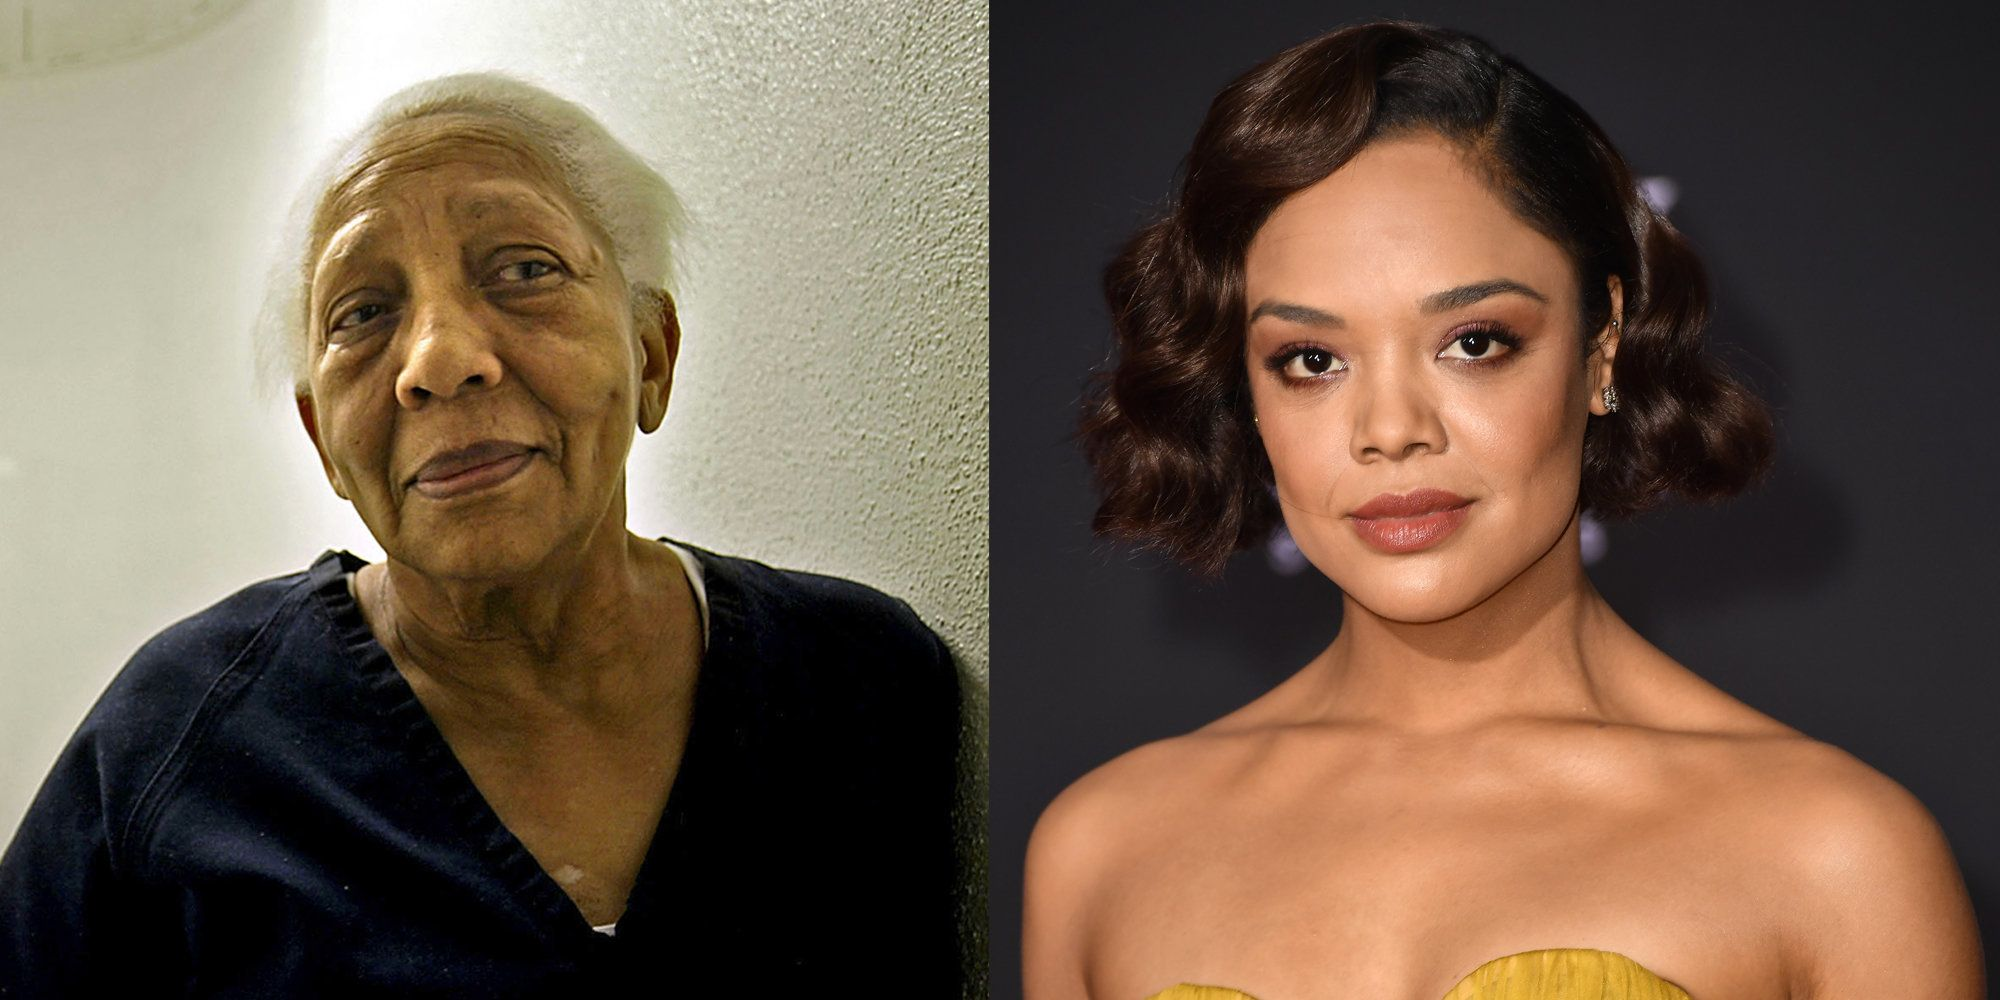 Tessa Thompson Will Portray Notorious Jewel Thief Doris Payne In Heist Movie